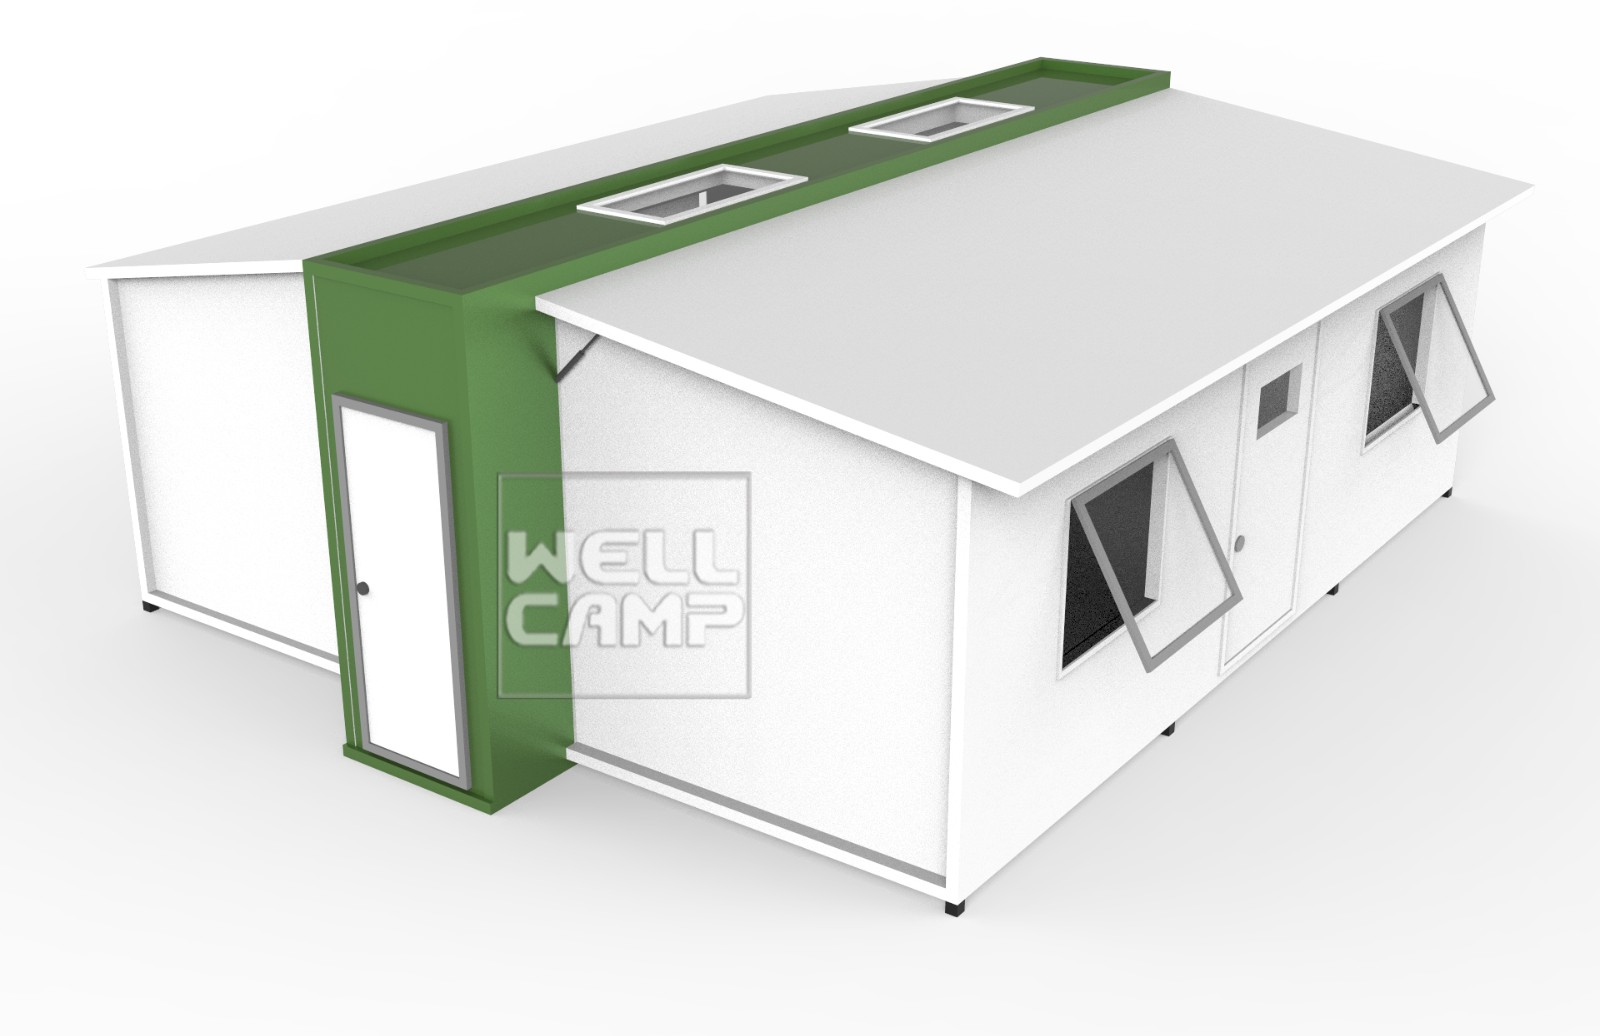 WELLCAMP-Expandable Container Shelters House For Family Student Dormitory E-01-1